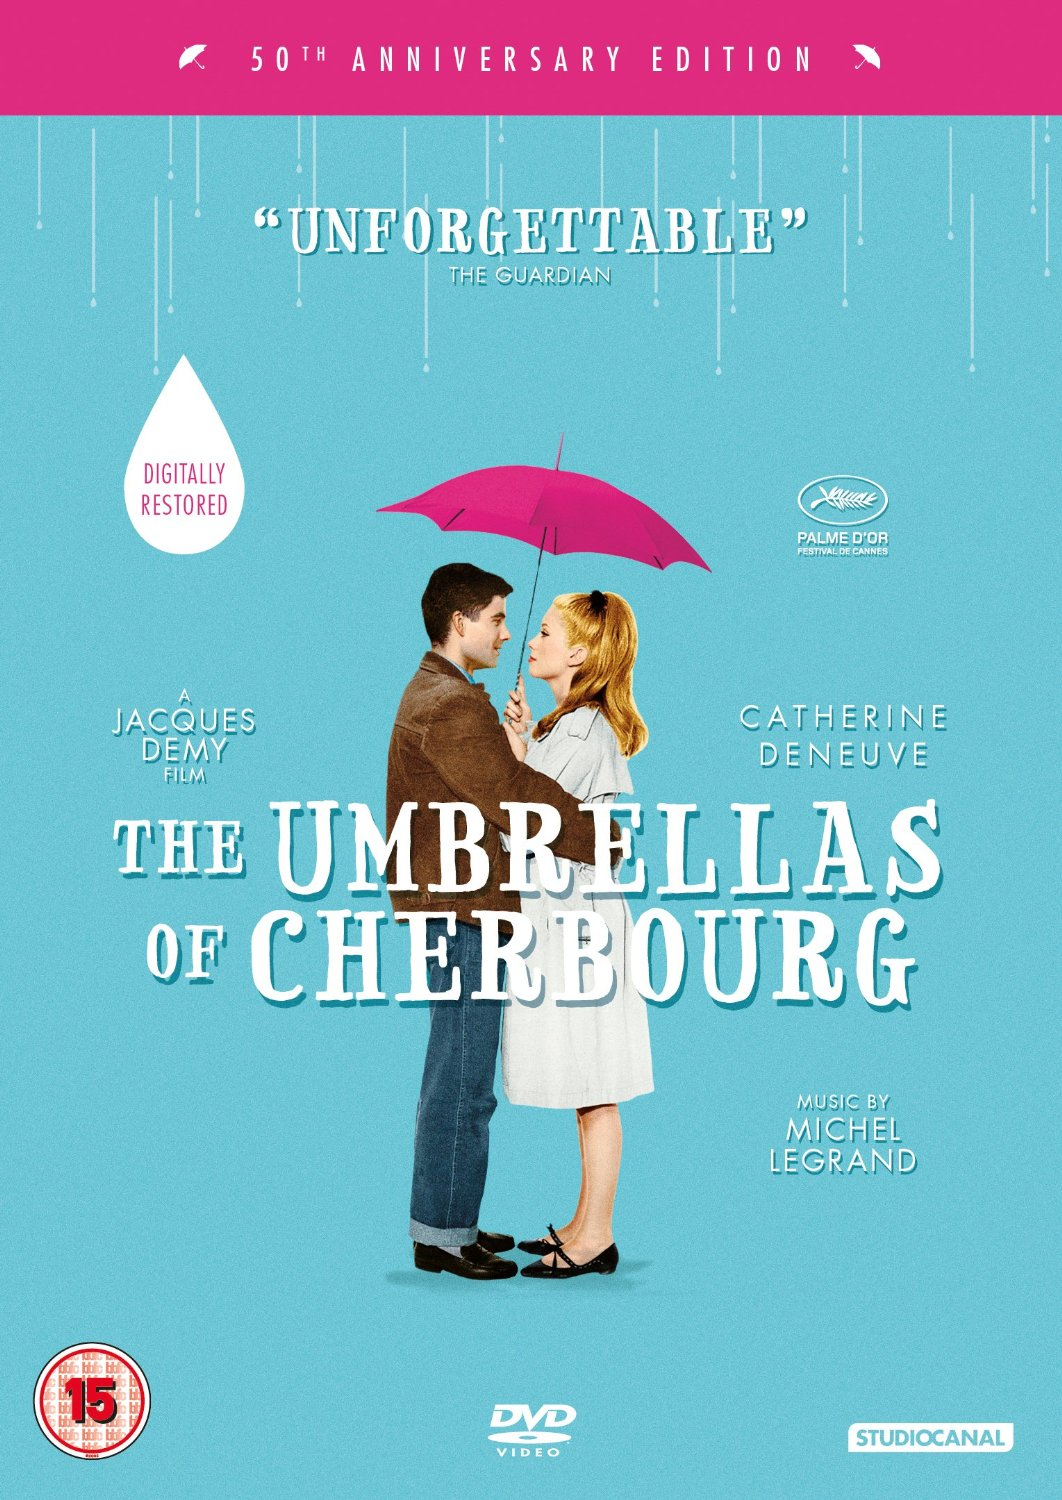 Buy Umbrellas of Cherbourg, The